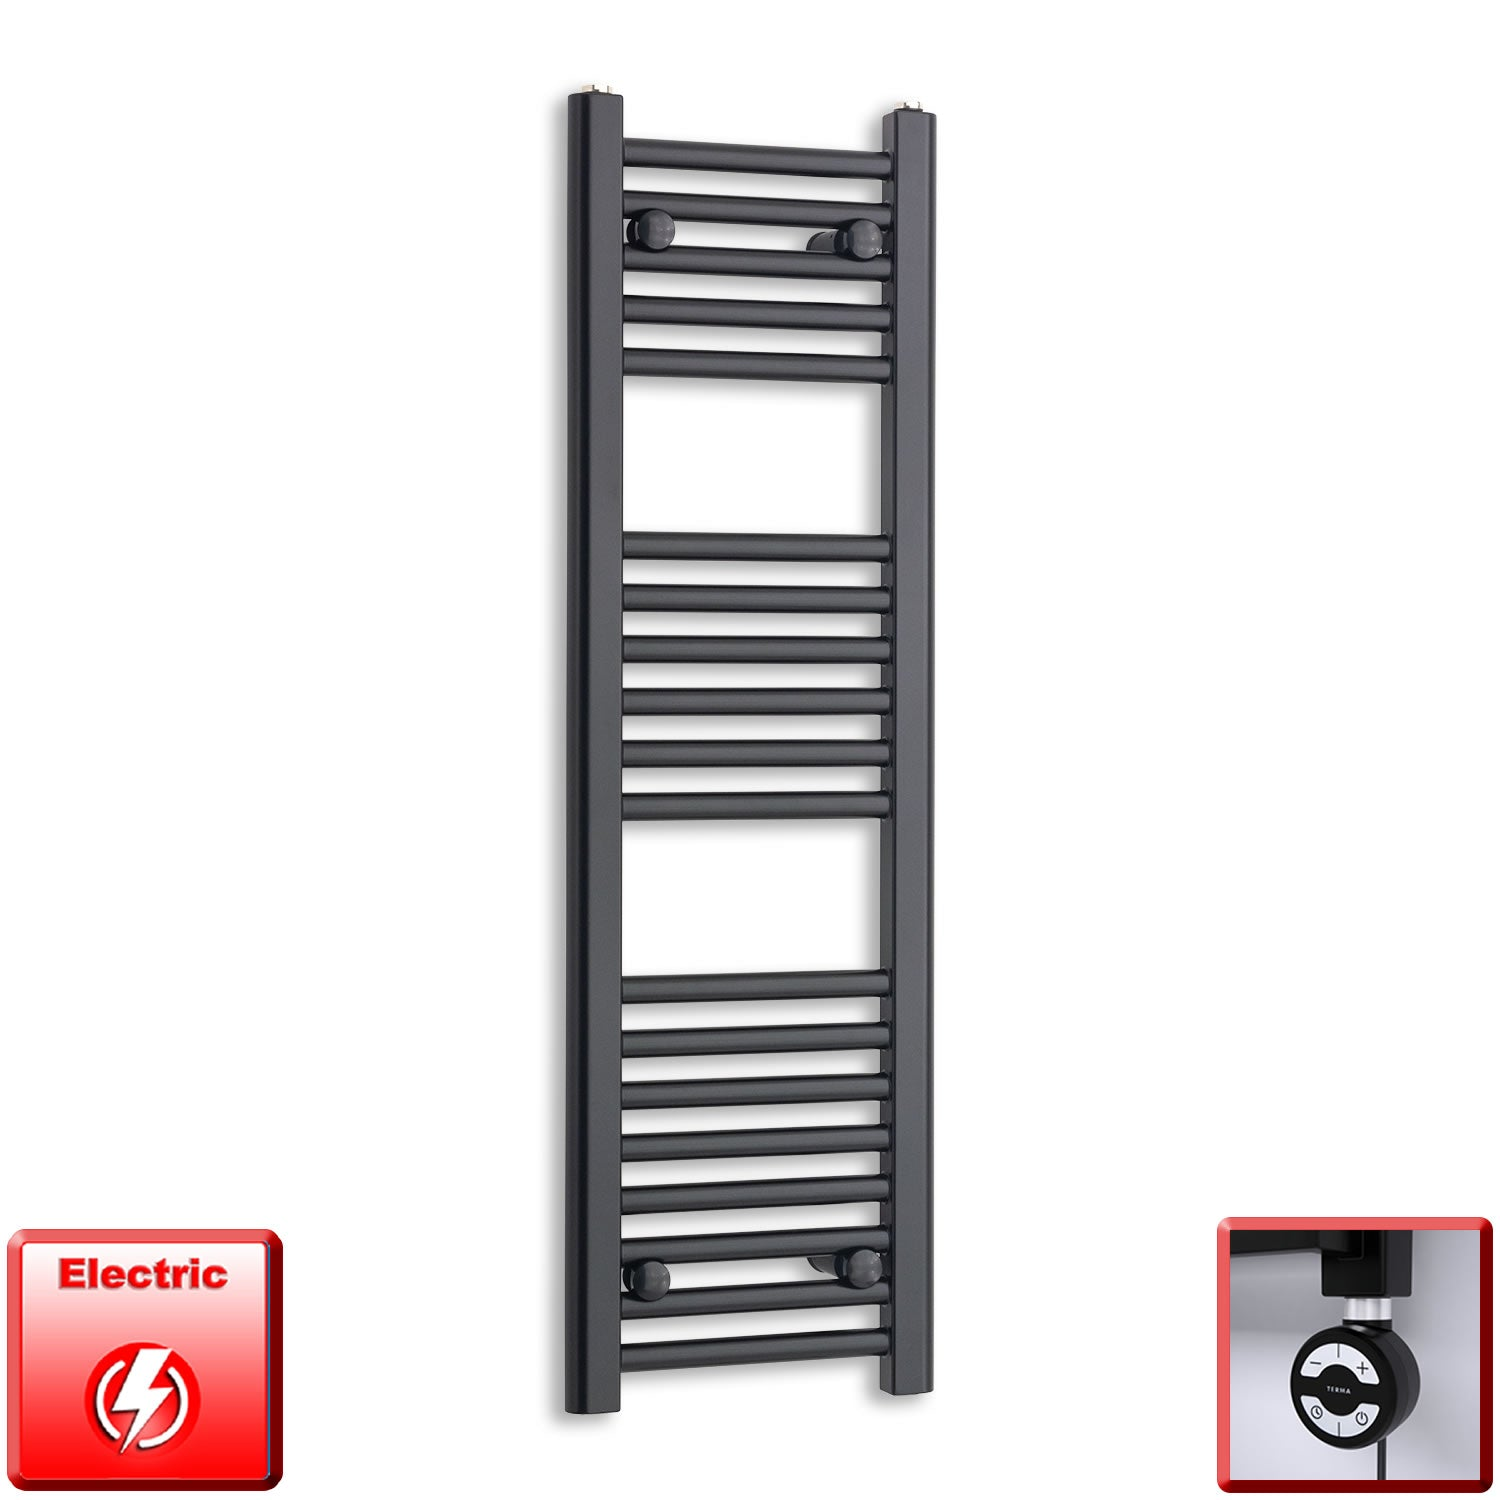 300mm Wide 1000mm High Flat Black Pre-Filled Electric Heated Towel Rail Radiator HTR,MOA Thermostatic Element